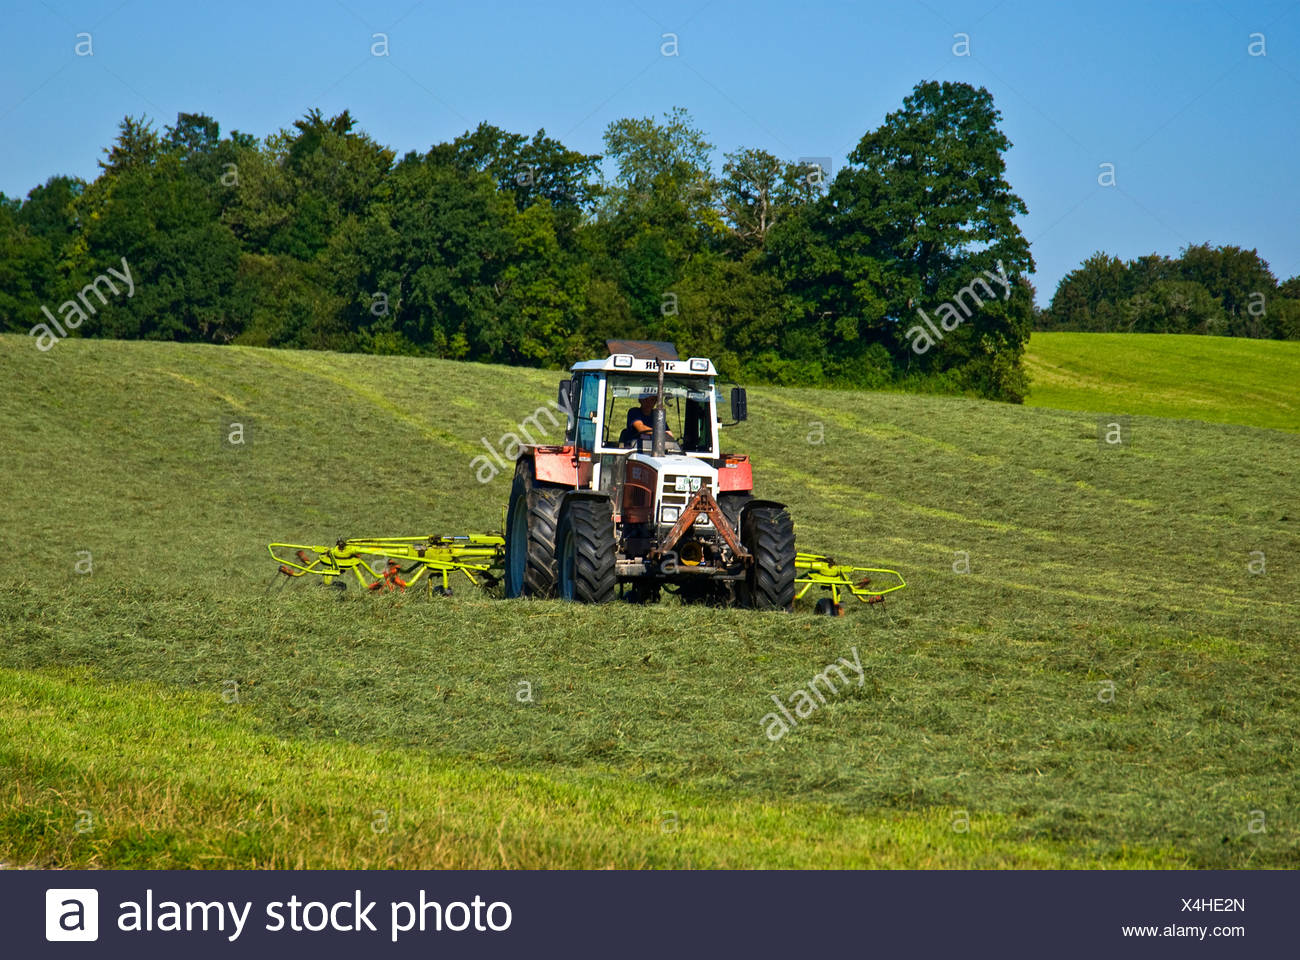 Tractor making hay on the meadows - Stock Image